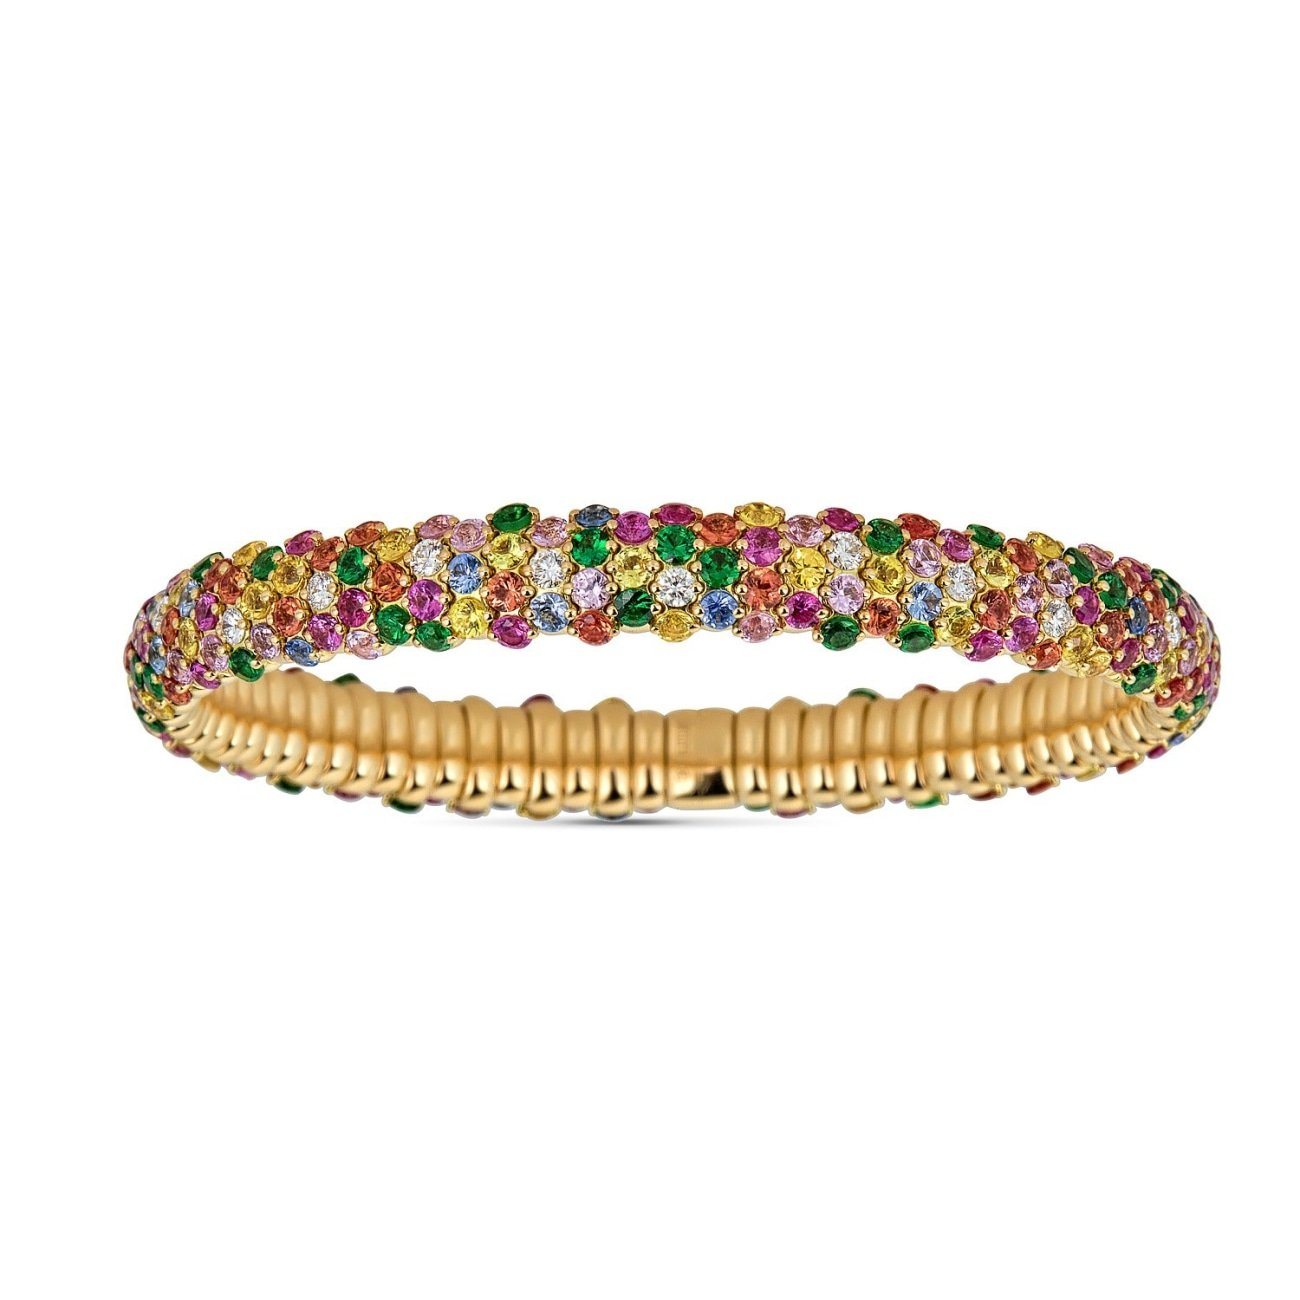 https://www.manfredijewels.com/collections/jewelry/products/stretch-bracelet-in-18kt-yellow-gold-2